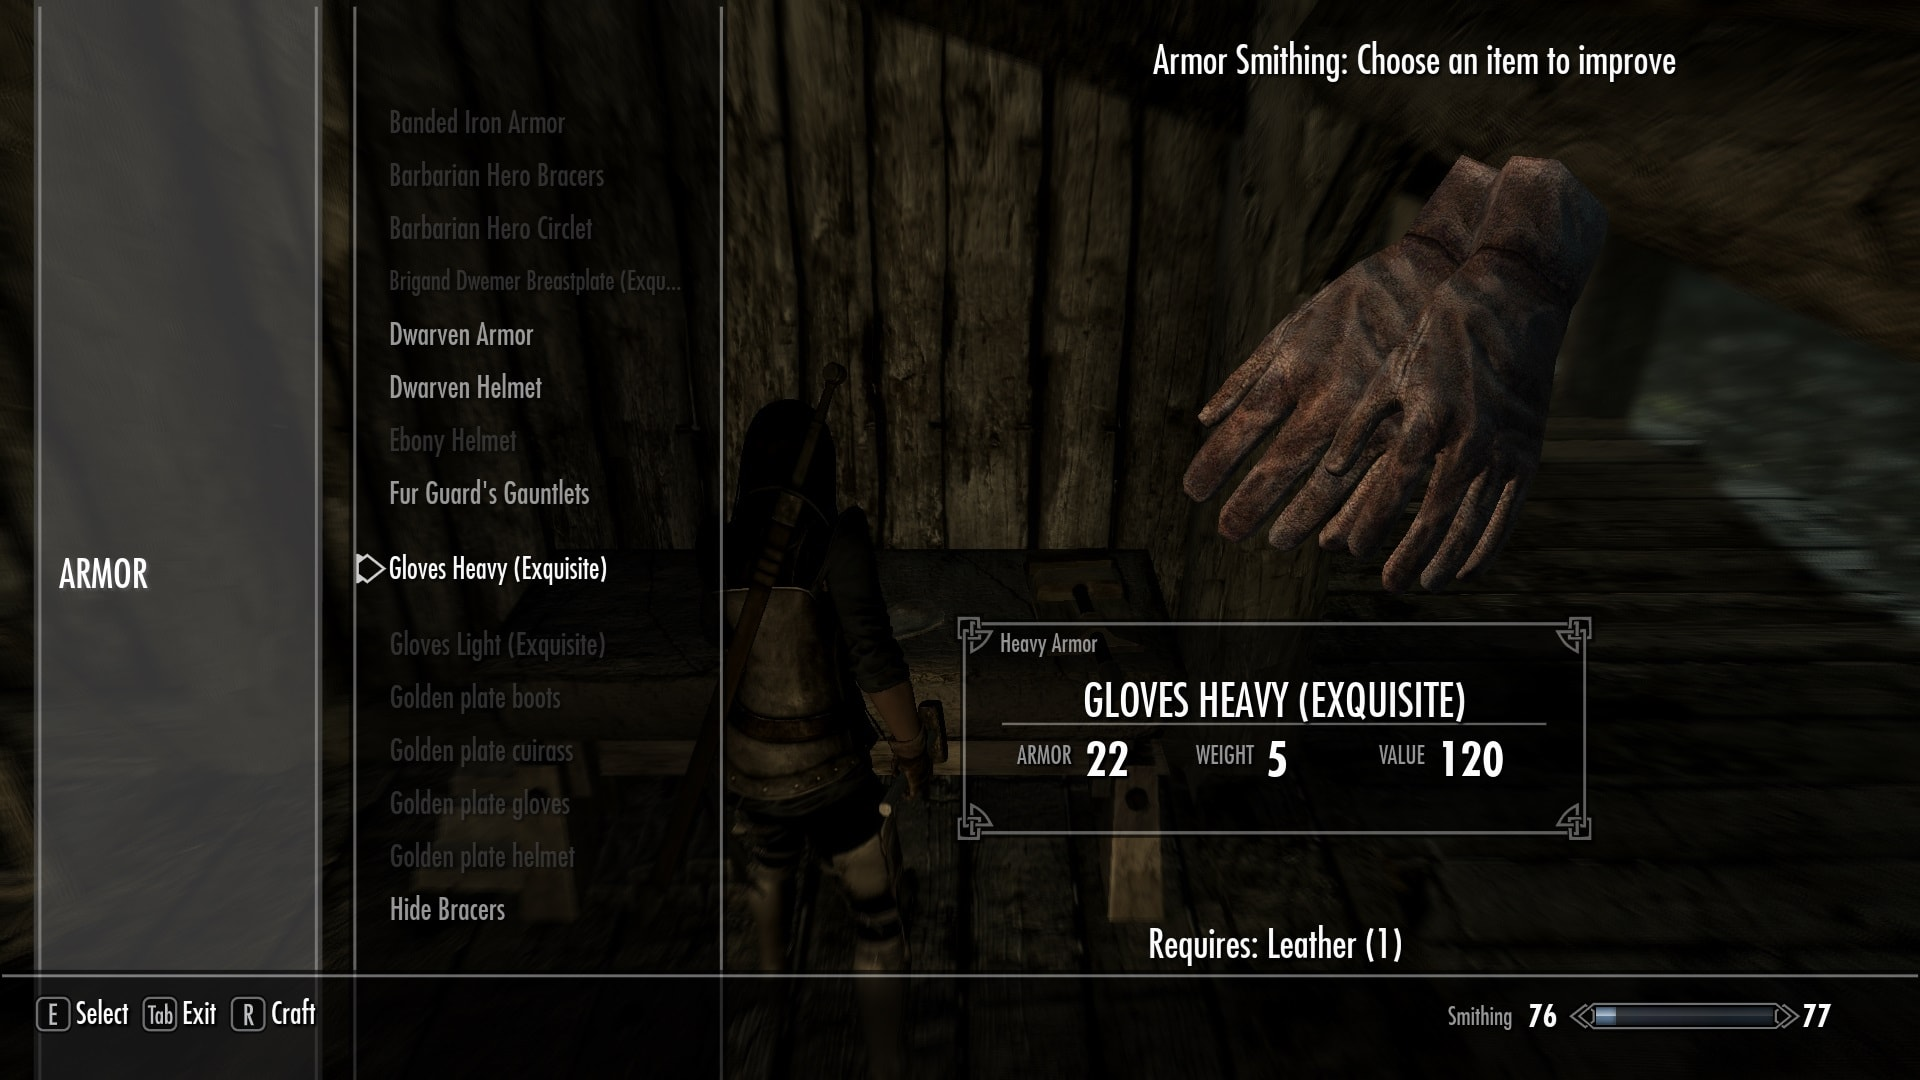 Simple Armored Gloves